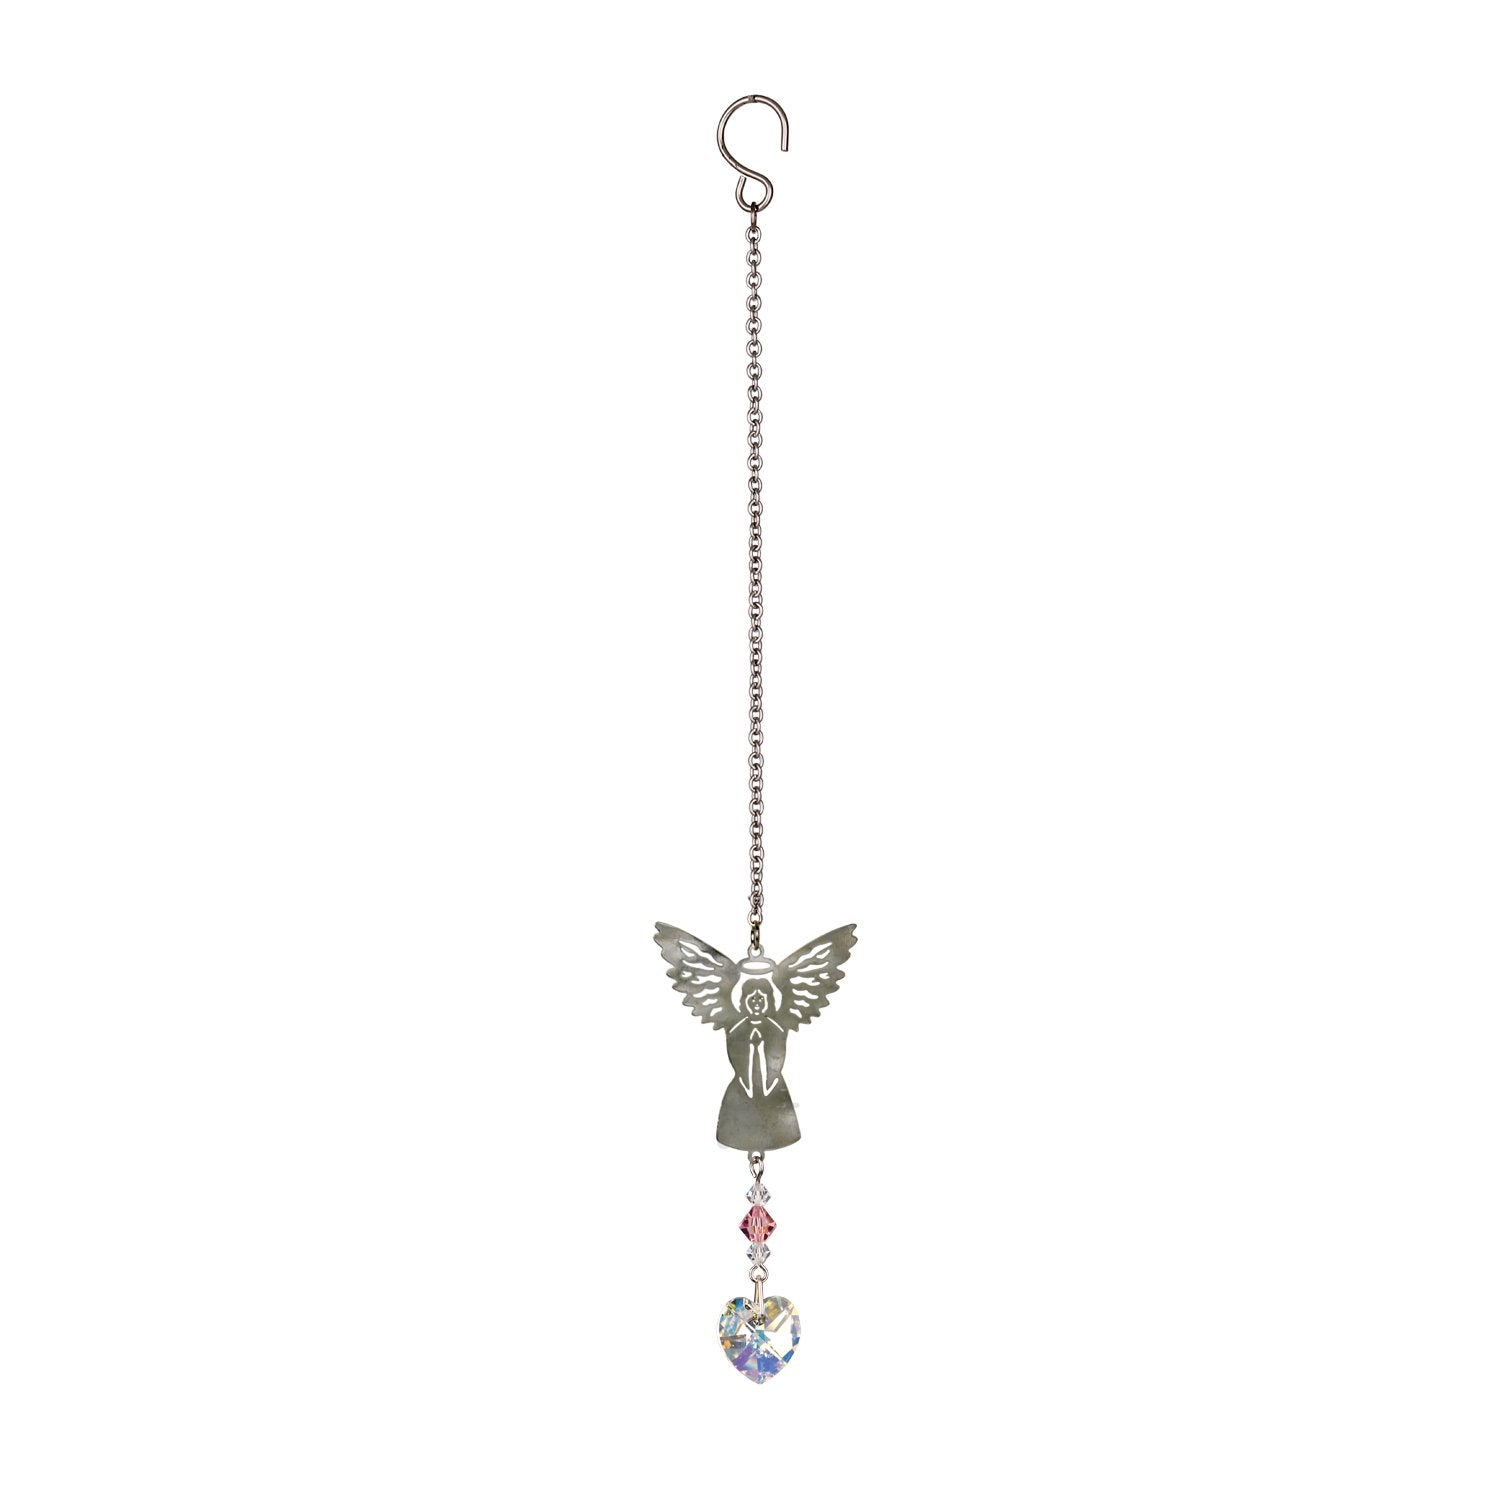 Birthstone Angel Crystal Suncatcher - October full product image